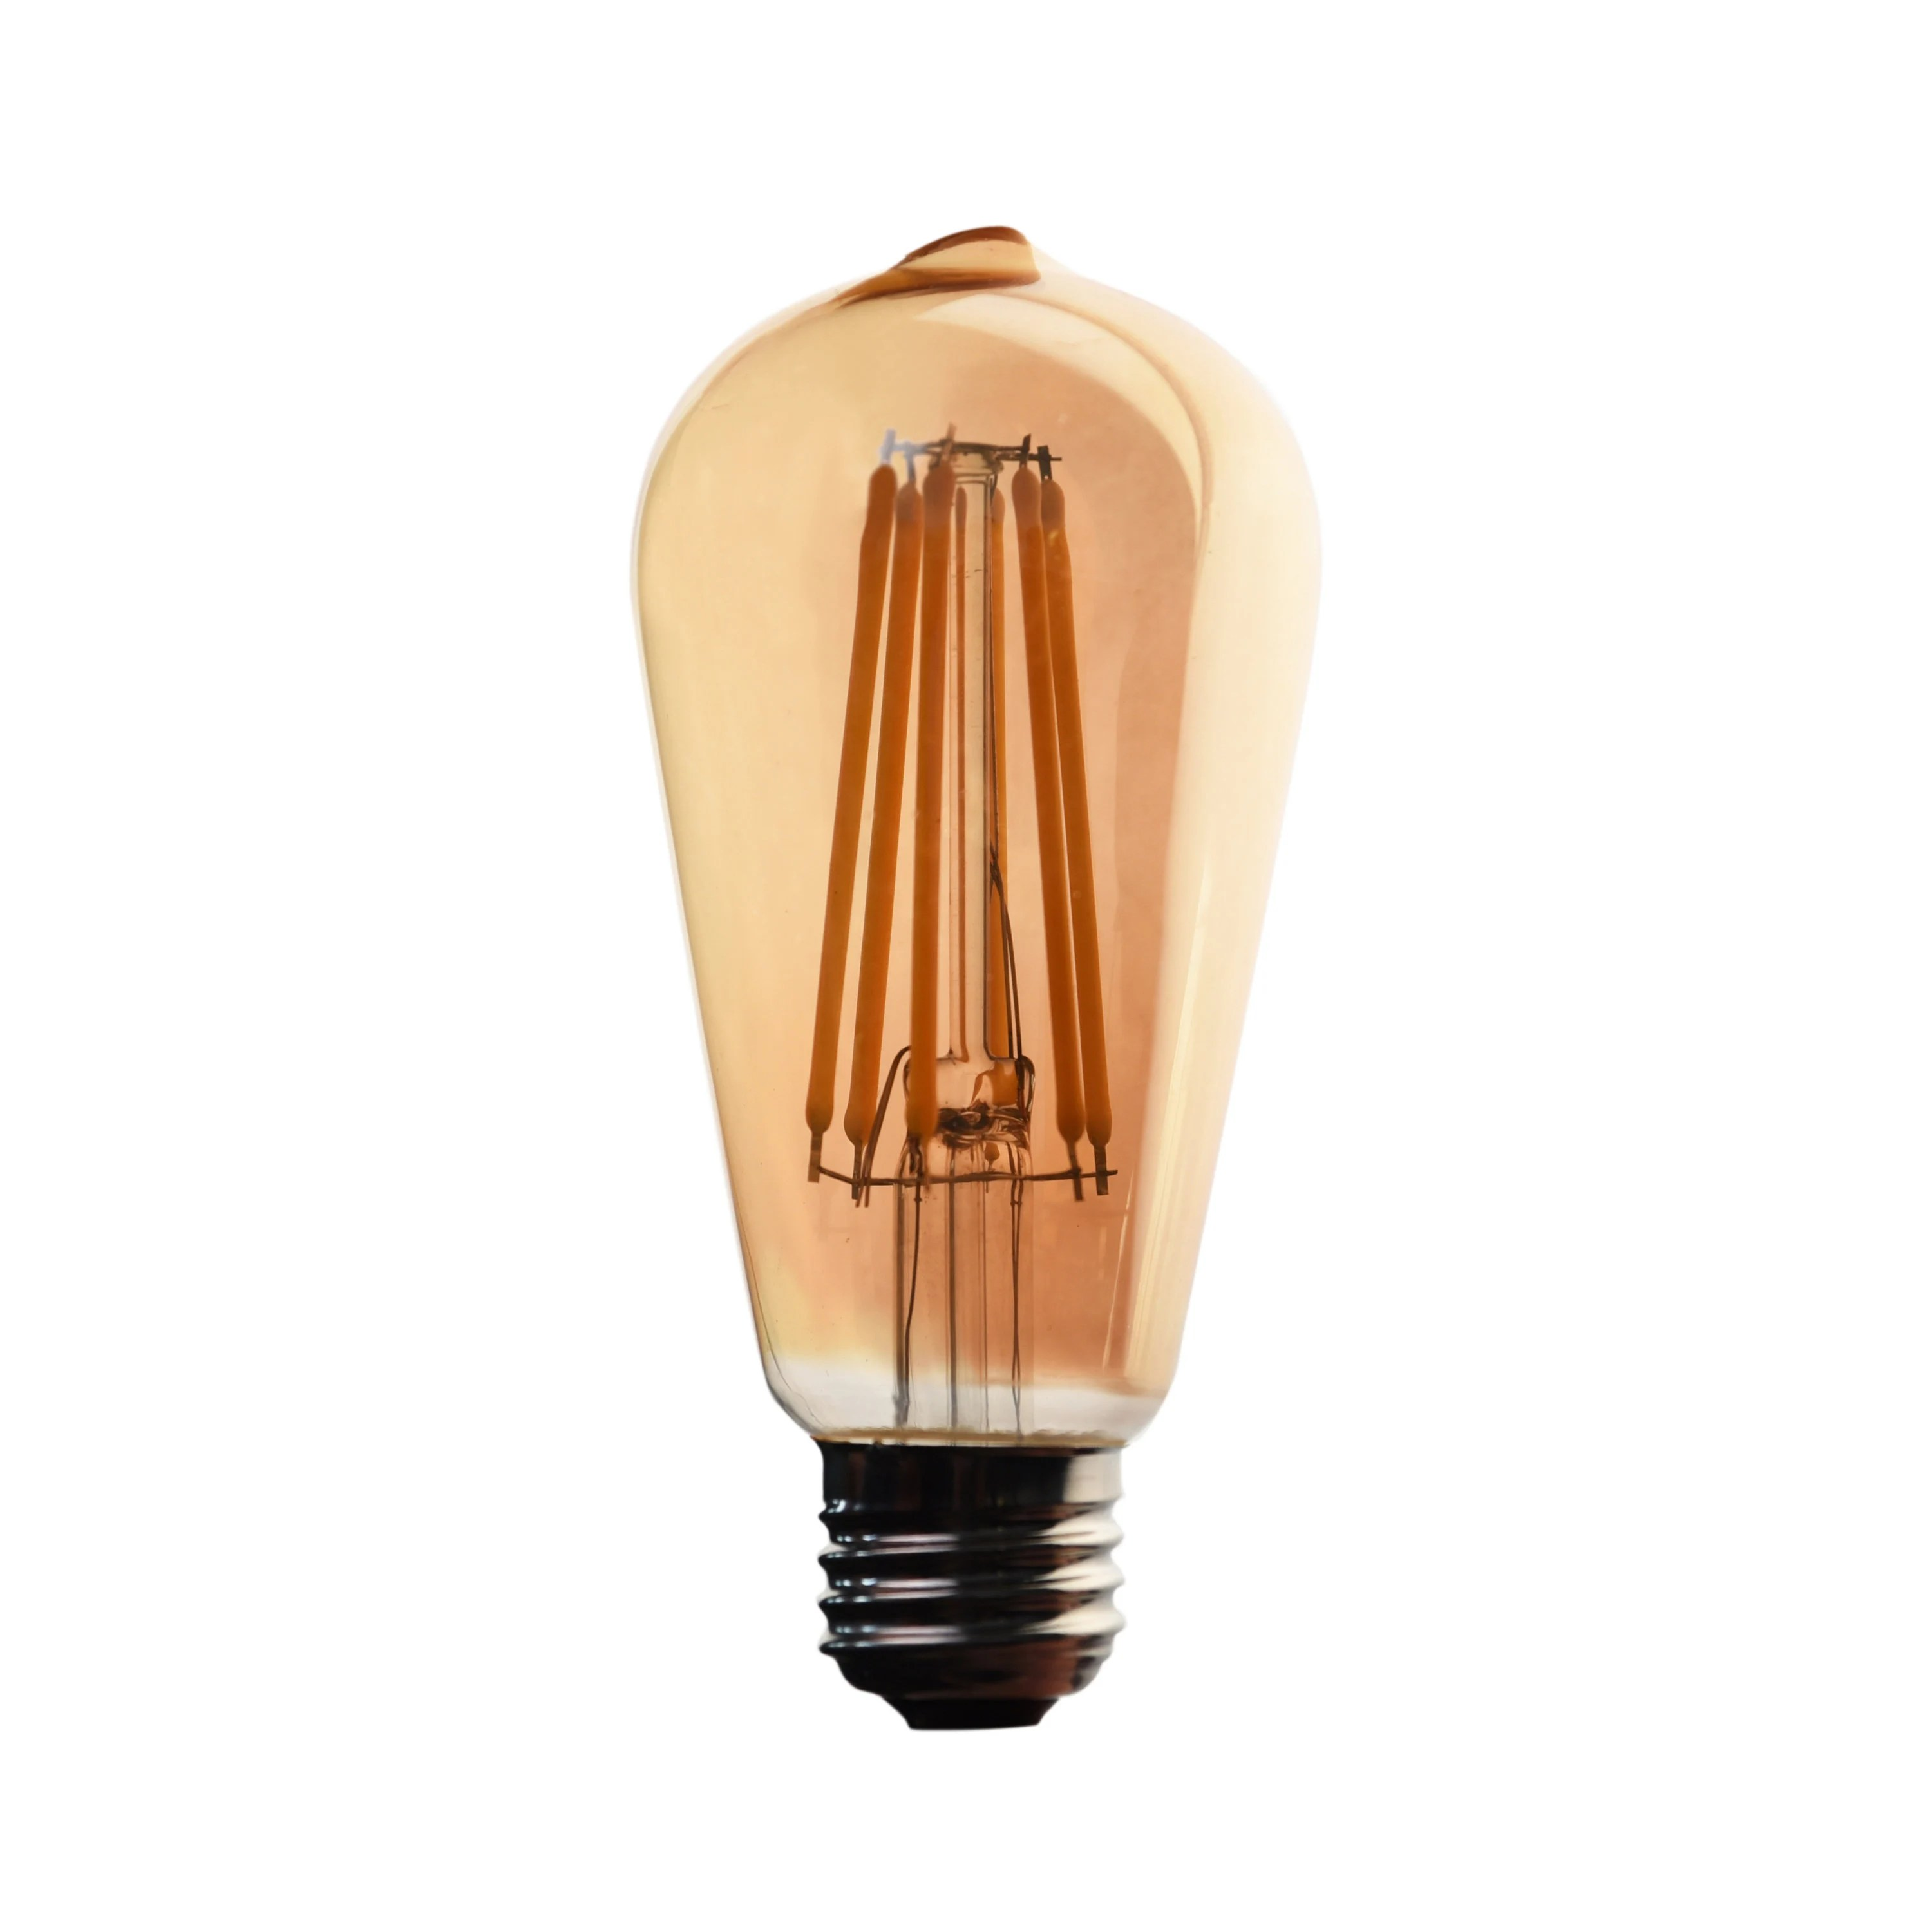 40 Watt In Lumen 4 5w Led Edison Bulb 400 Lumens 40 Watt Equivalent Fully